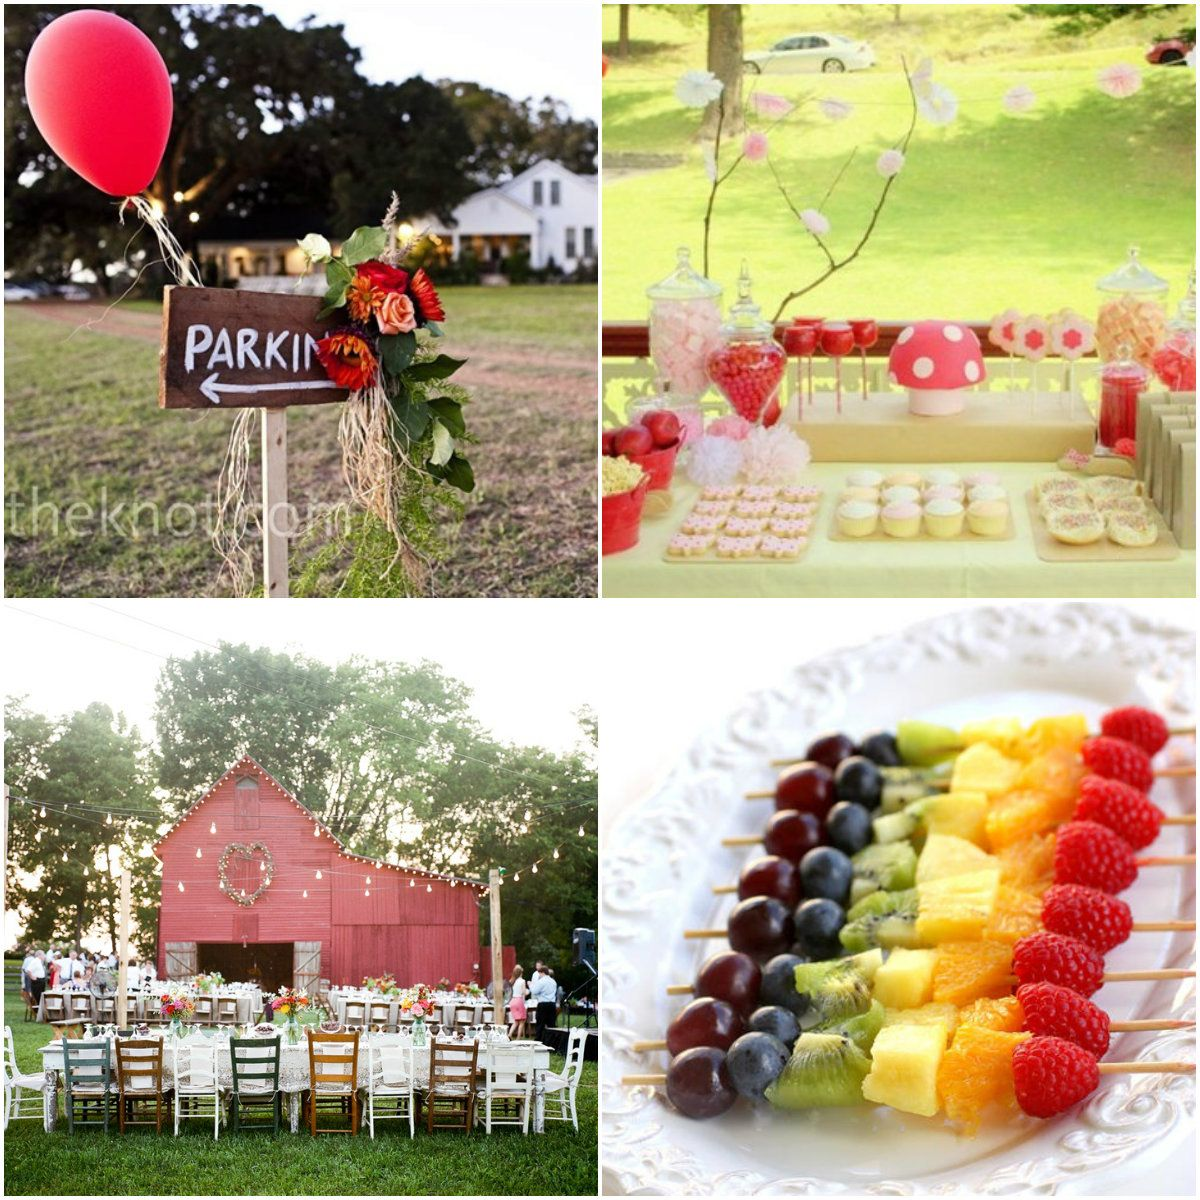 Garden Party Ideas Pinterest candy garden themed birthday party via karas party ideas karaspartyideascom the place for all 18th Birthday Garden Party Decorations